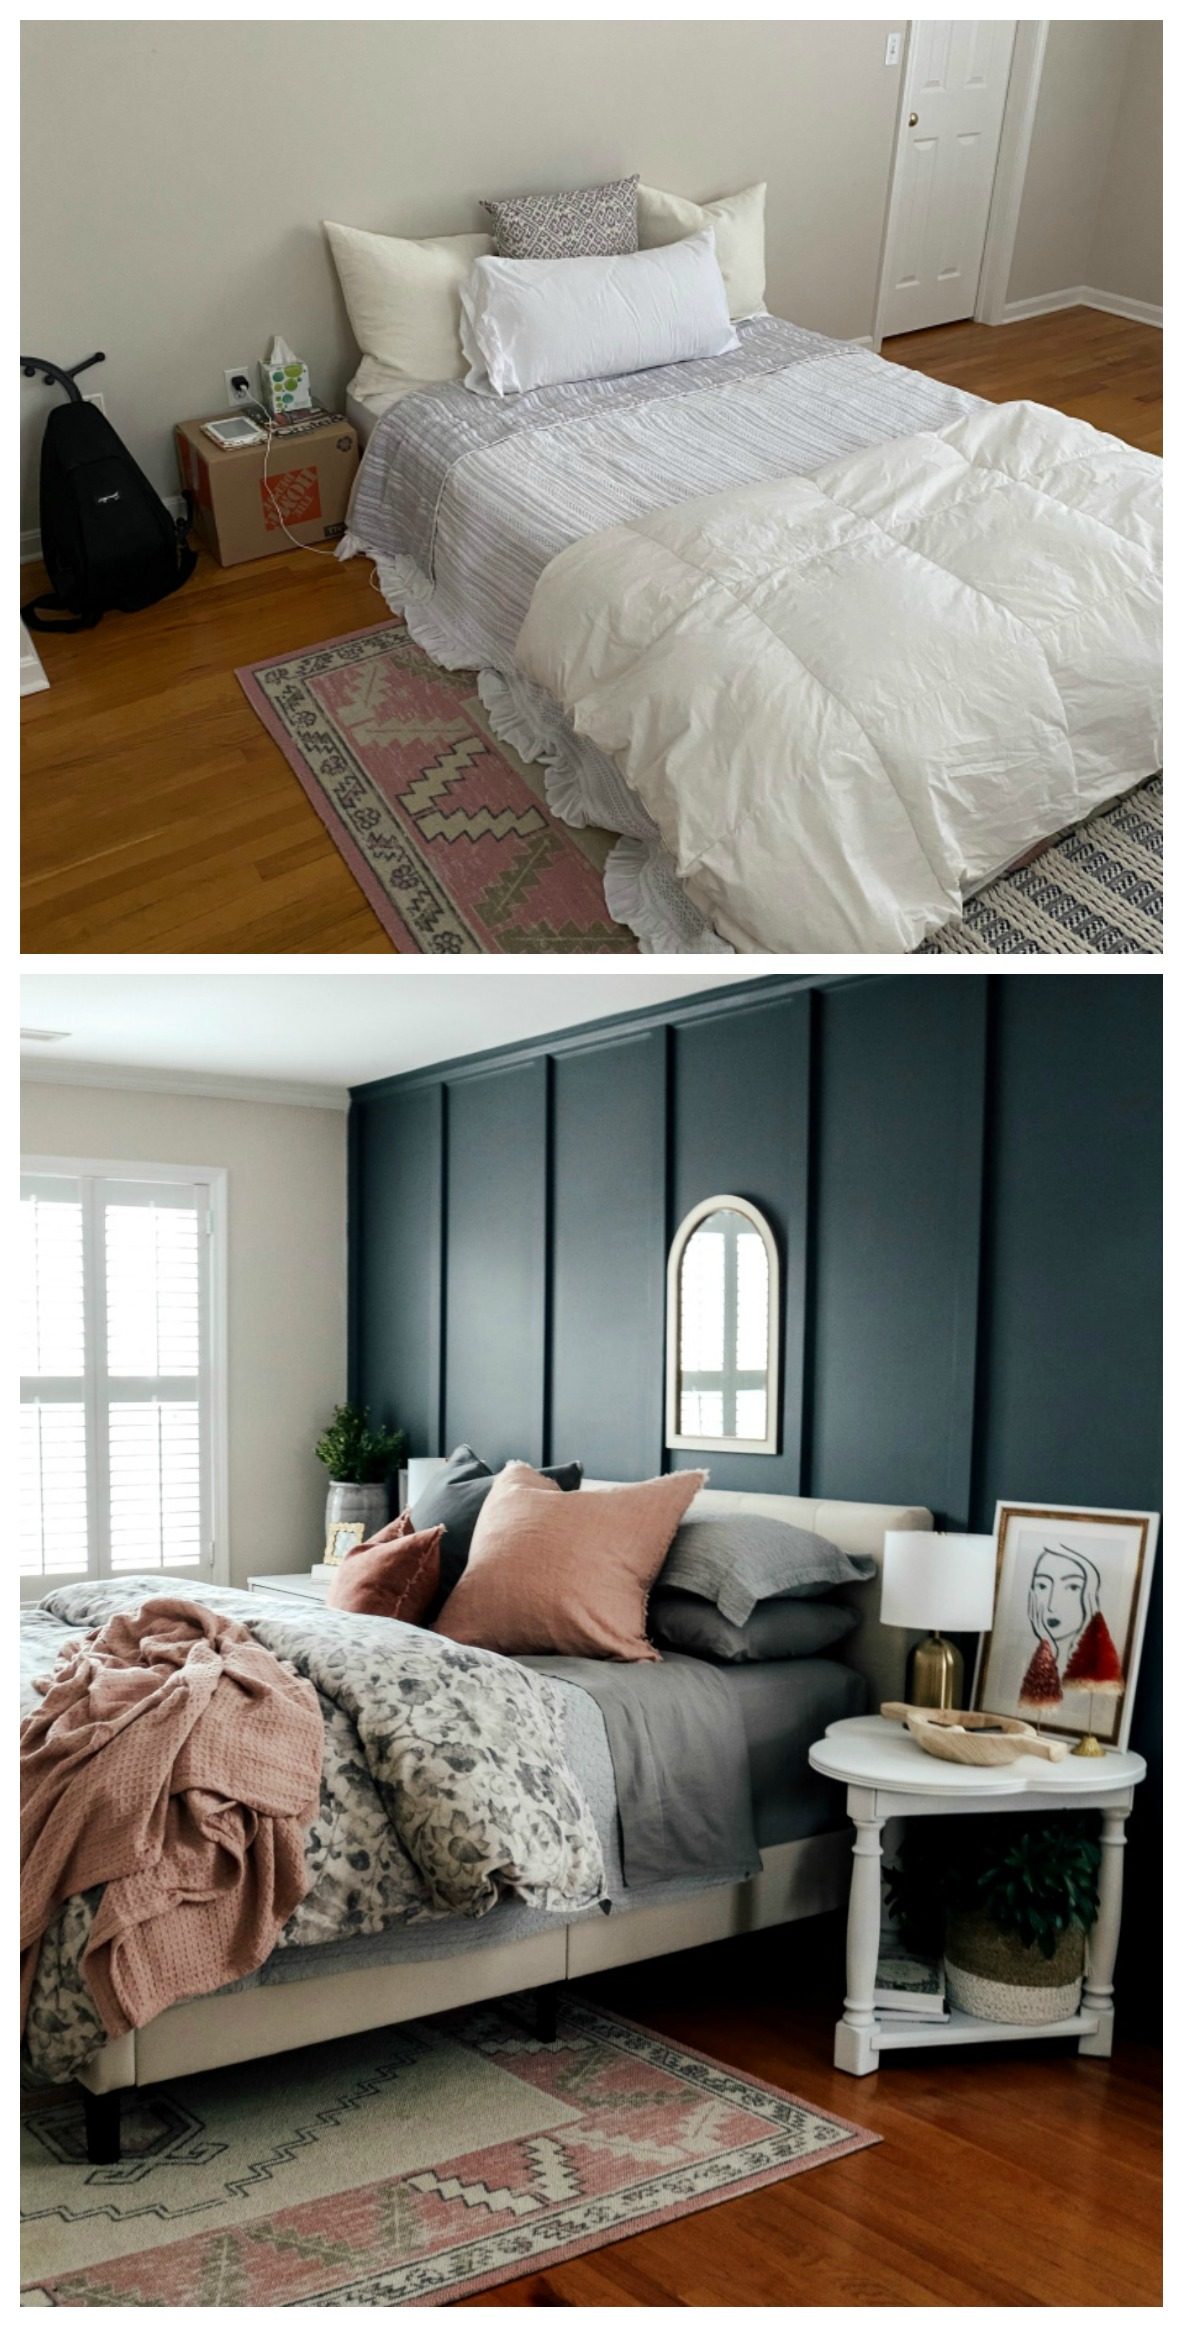 Bedroom Makeover with Board and Batten Walls